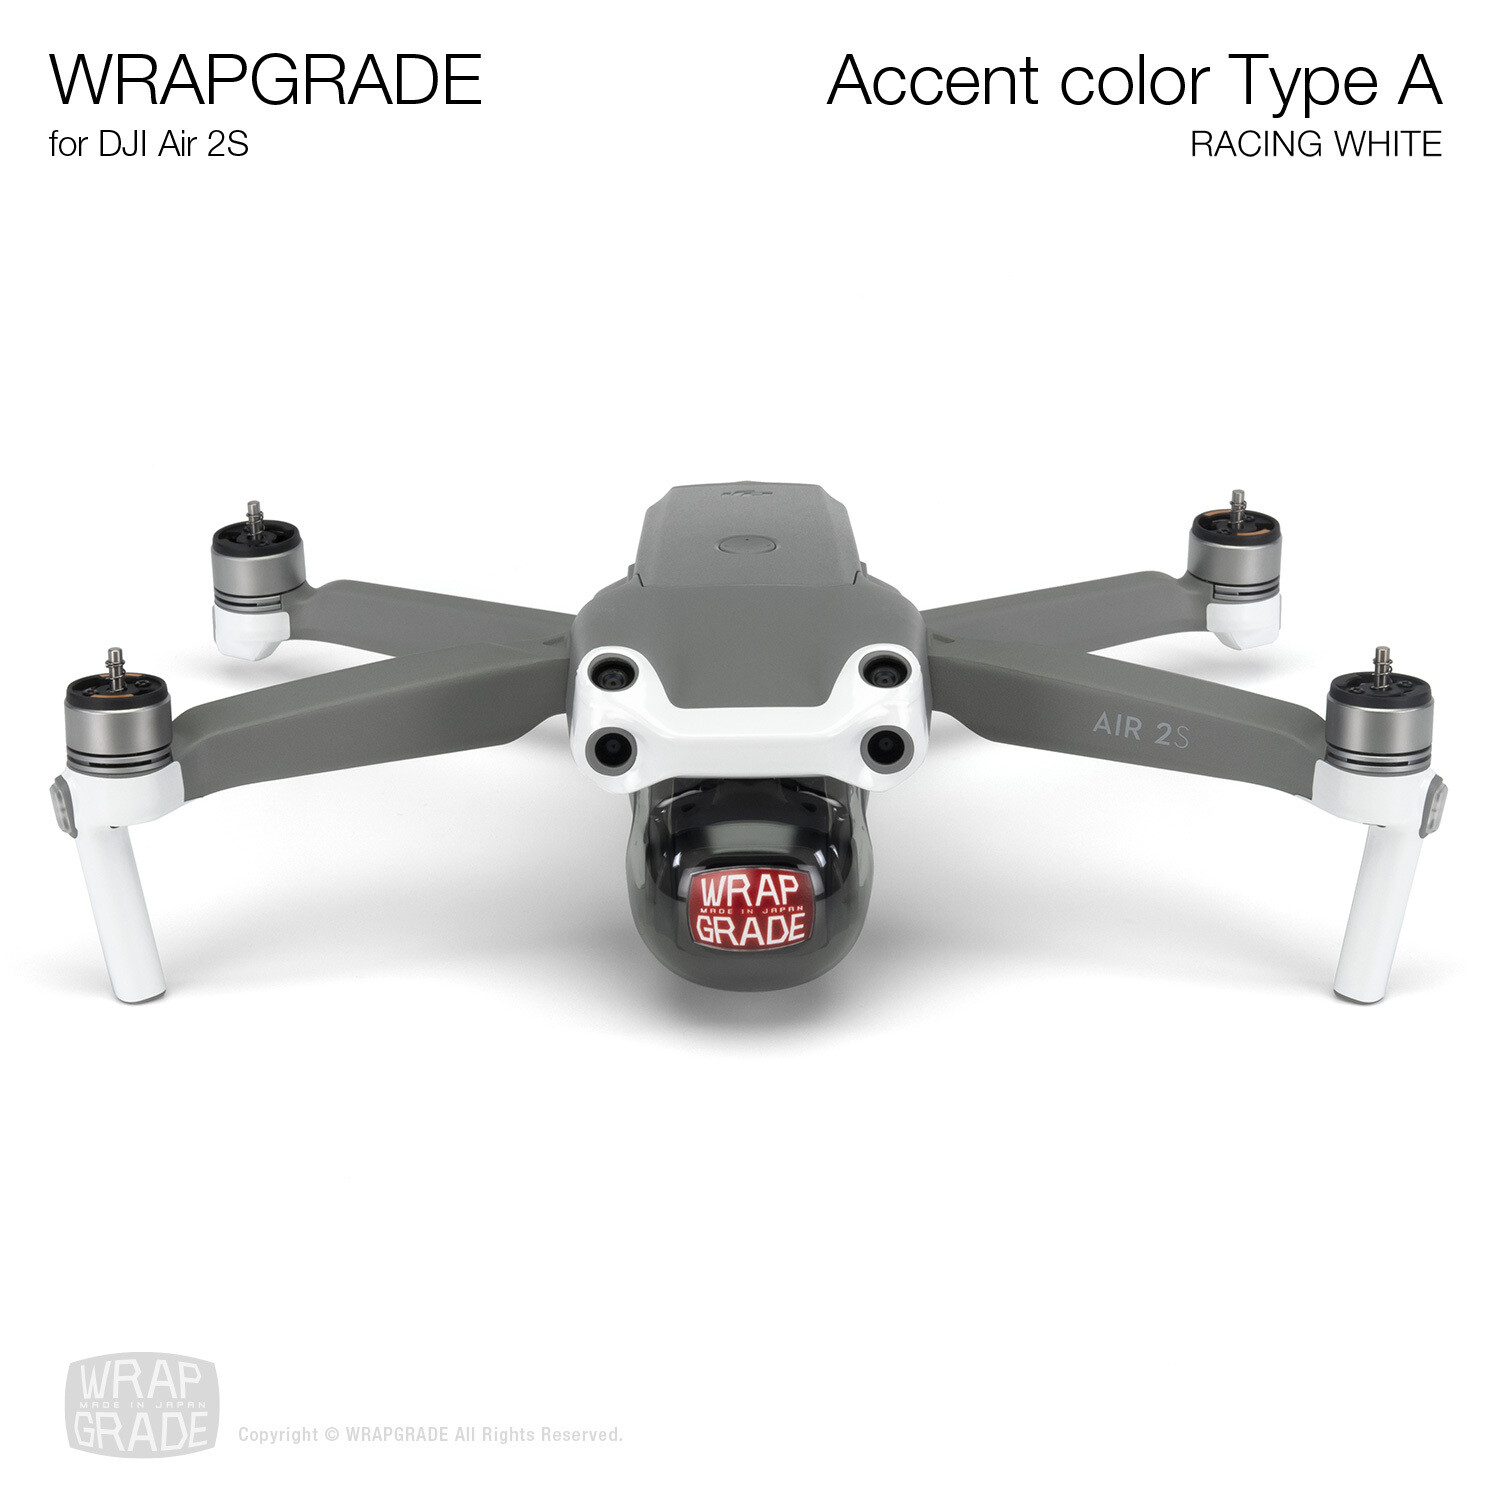 Wrapgrade Skin for DJI Air 2S | Accent Color A (RACING WHITE)